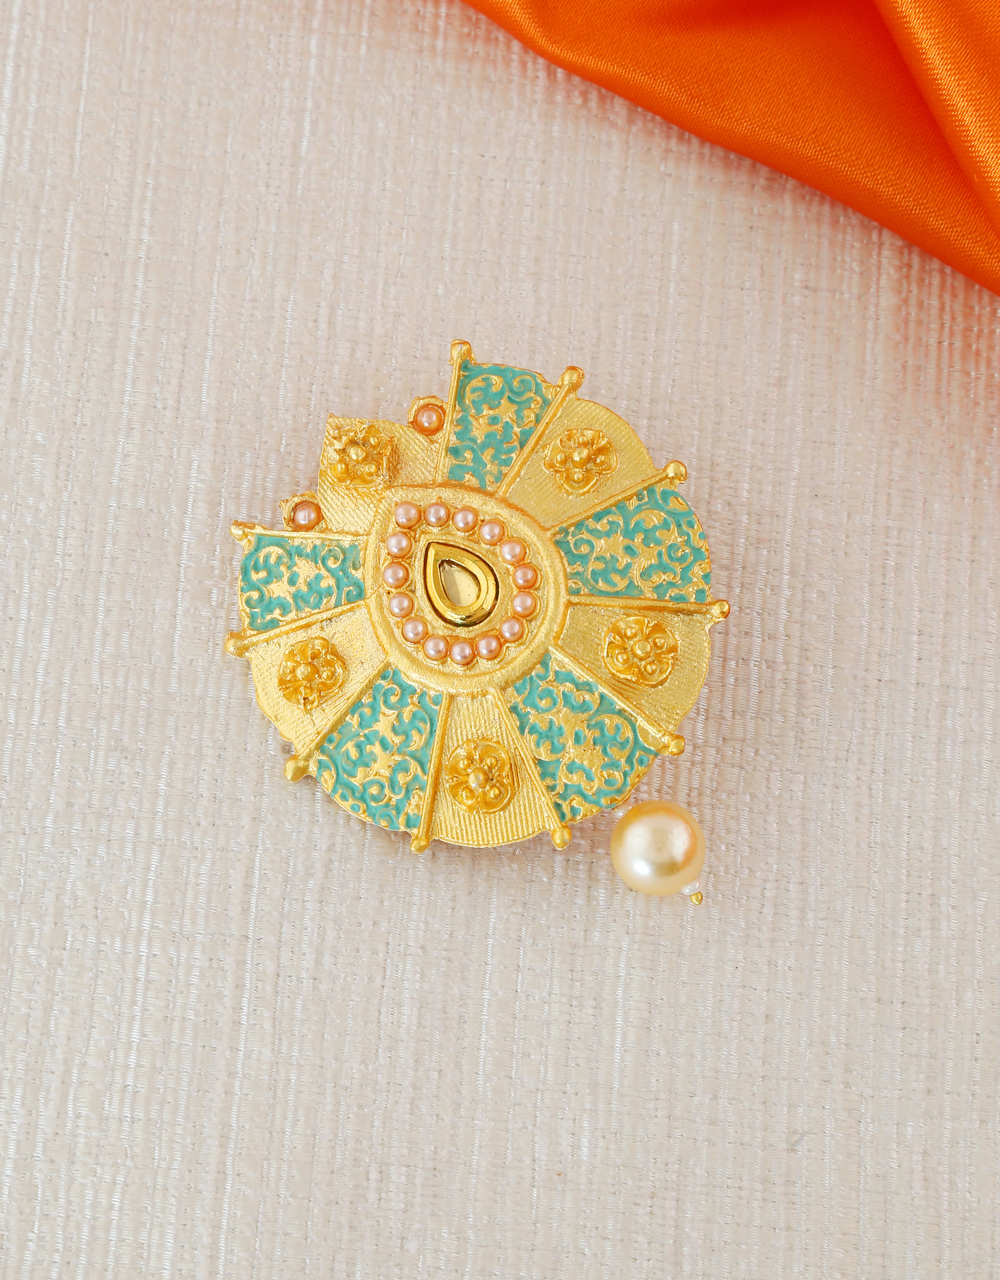 Green Colour Gold Finish Traditional Brooch Pin